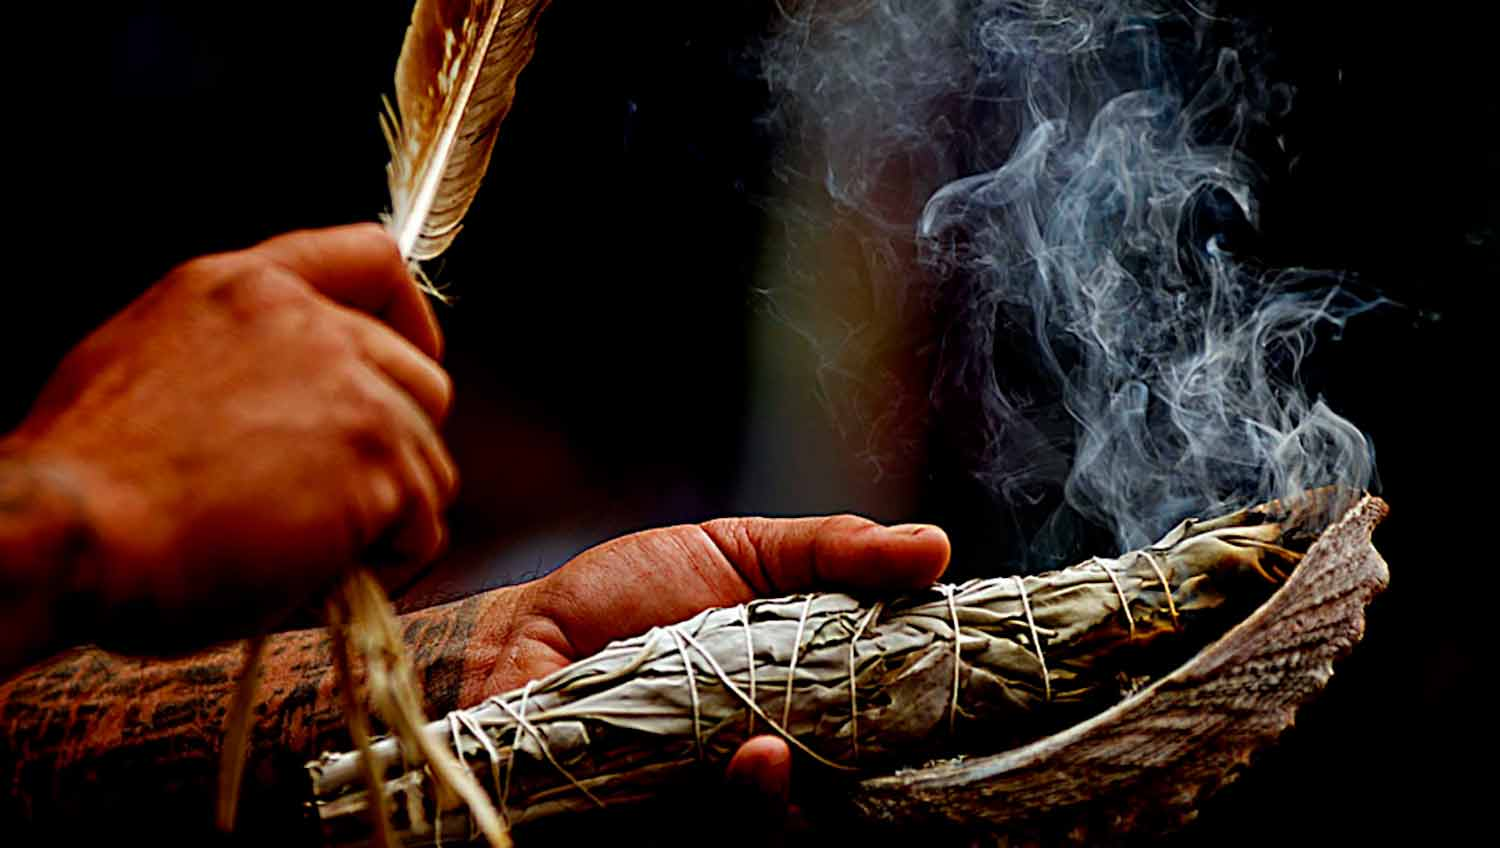 Smudging is the common name given to a powerful cleansing technique from the Native North American Tradition